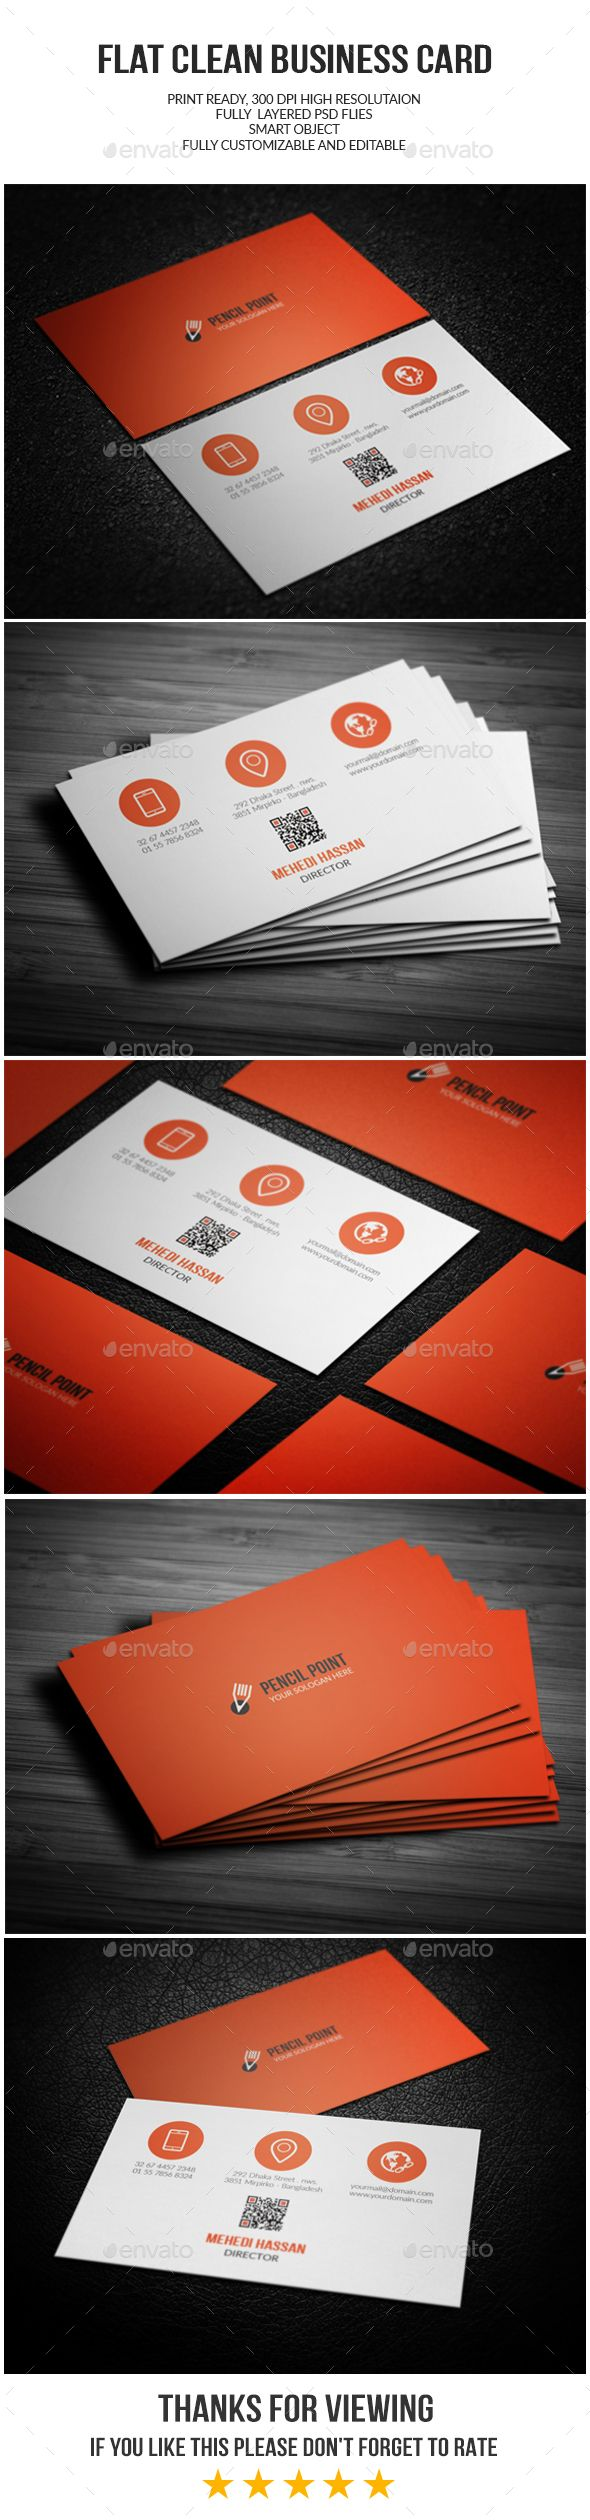 12 Best Business Cards Images On Pinterest Carte De Visite